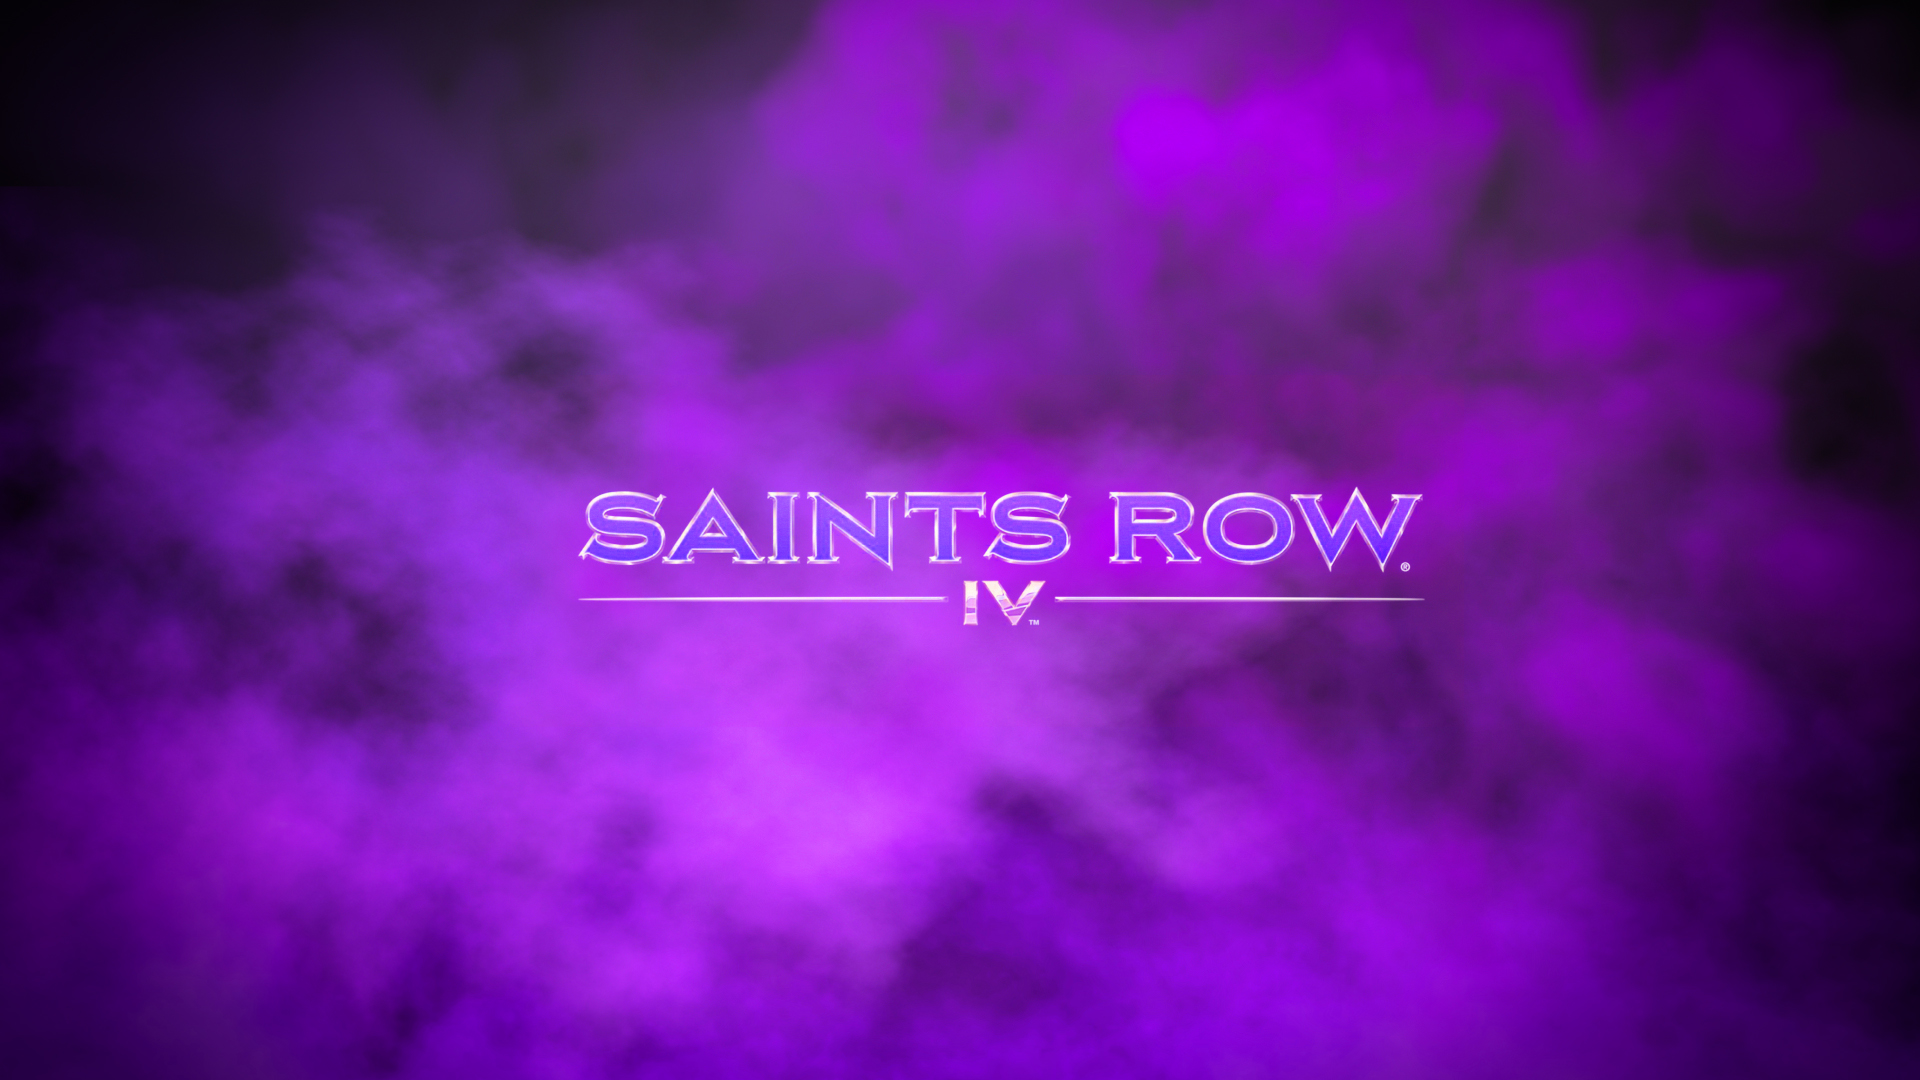 Saints Row 4 Wallpapers: Saints Row IV Wallpaper By Binary-Map On DeviantArt